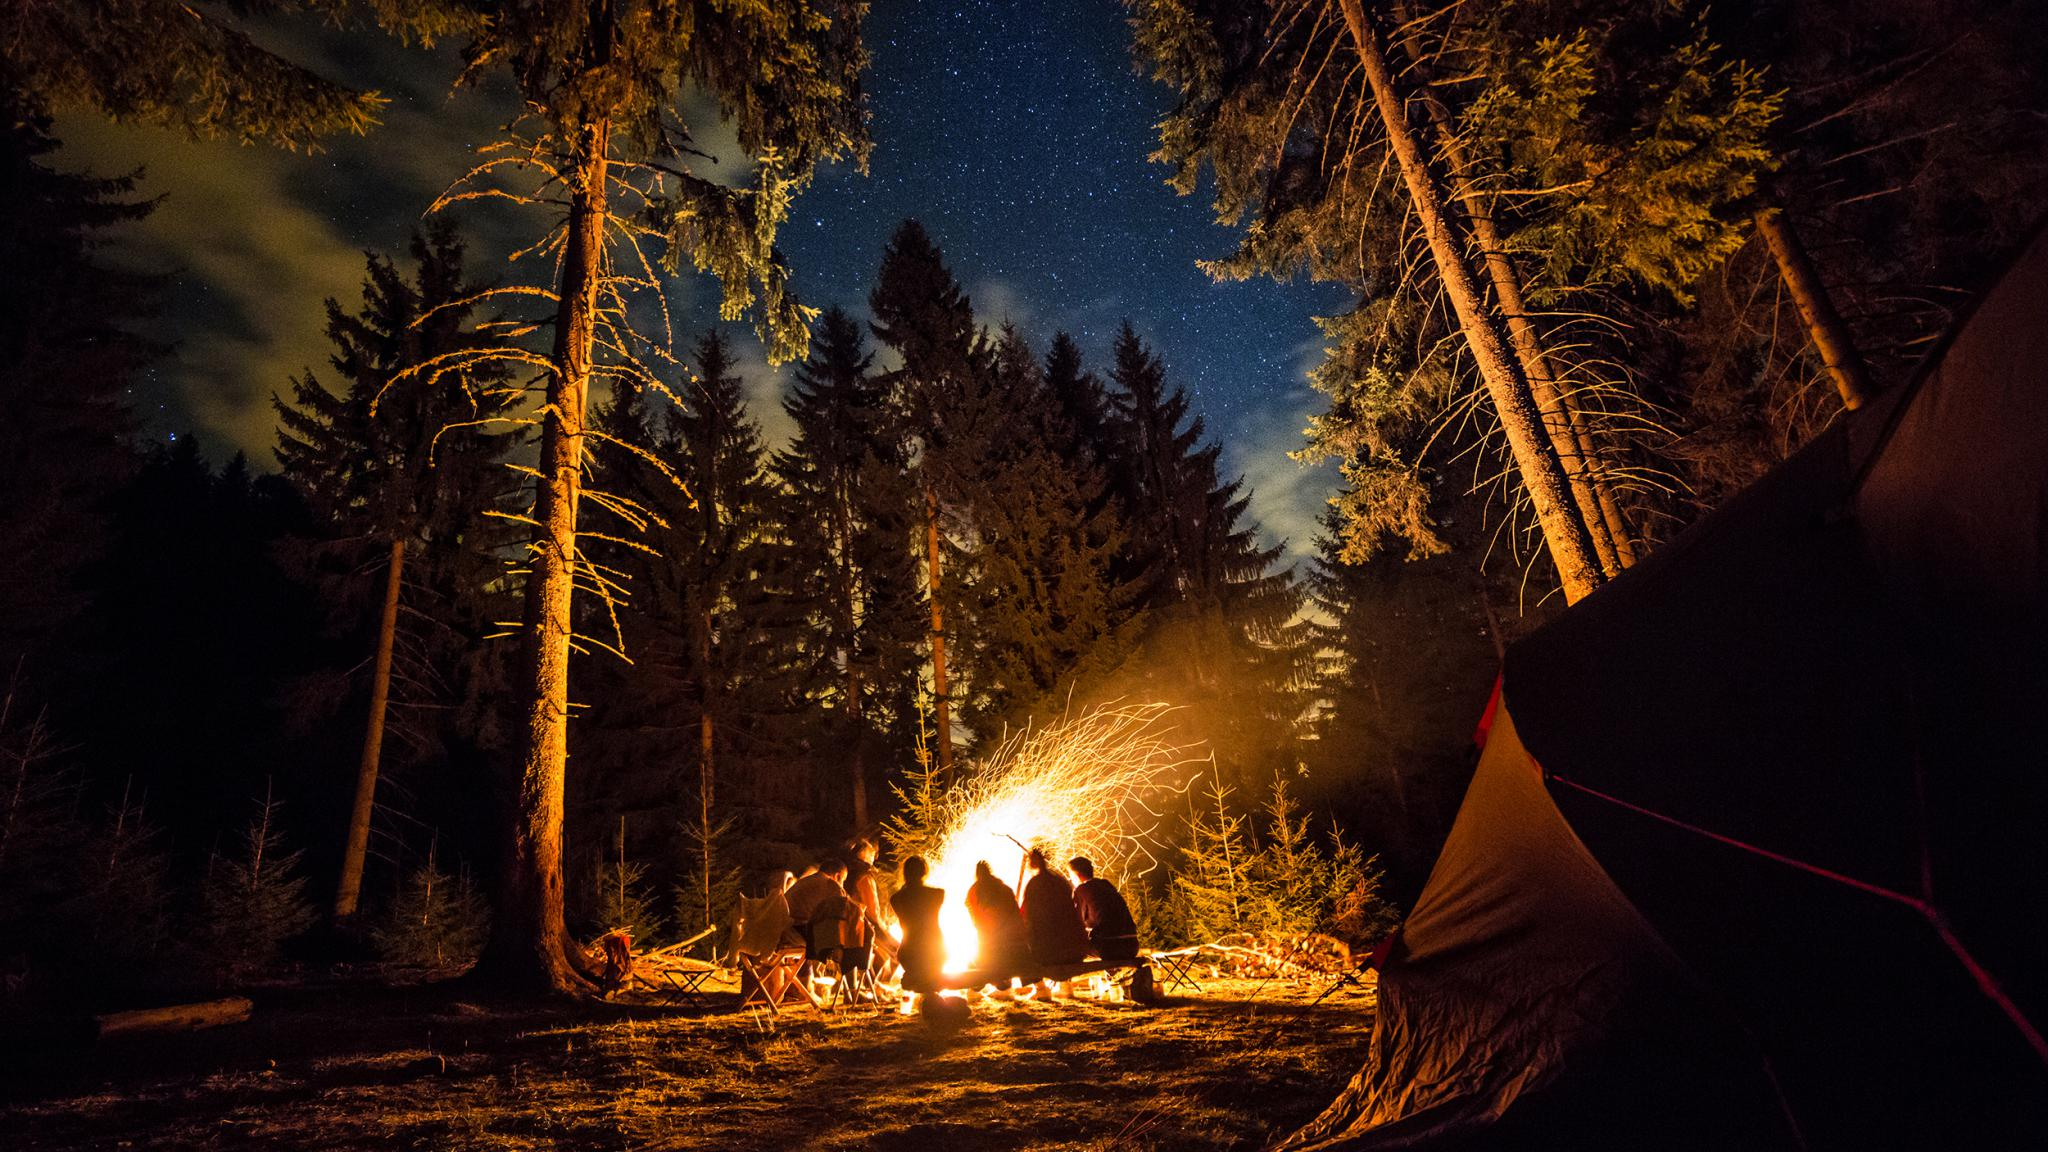 Camping Fire This is an image of a group of people sitting by a camping fire in the mountains. By: TG_Studios